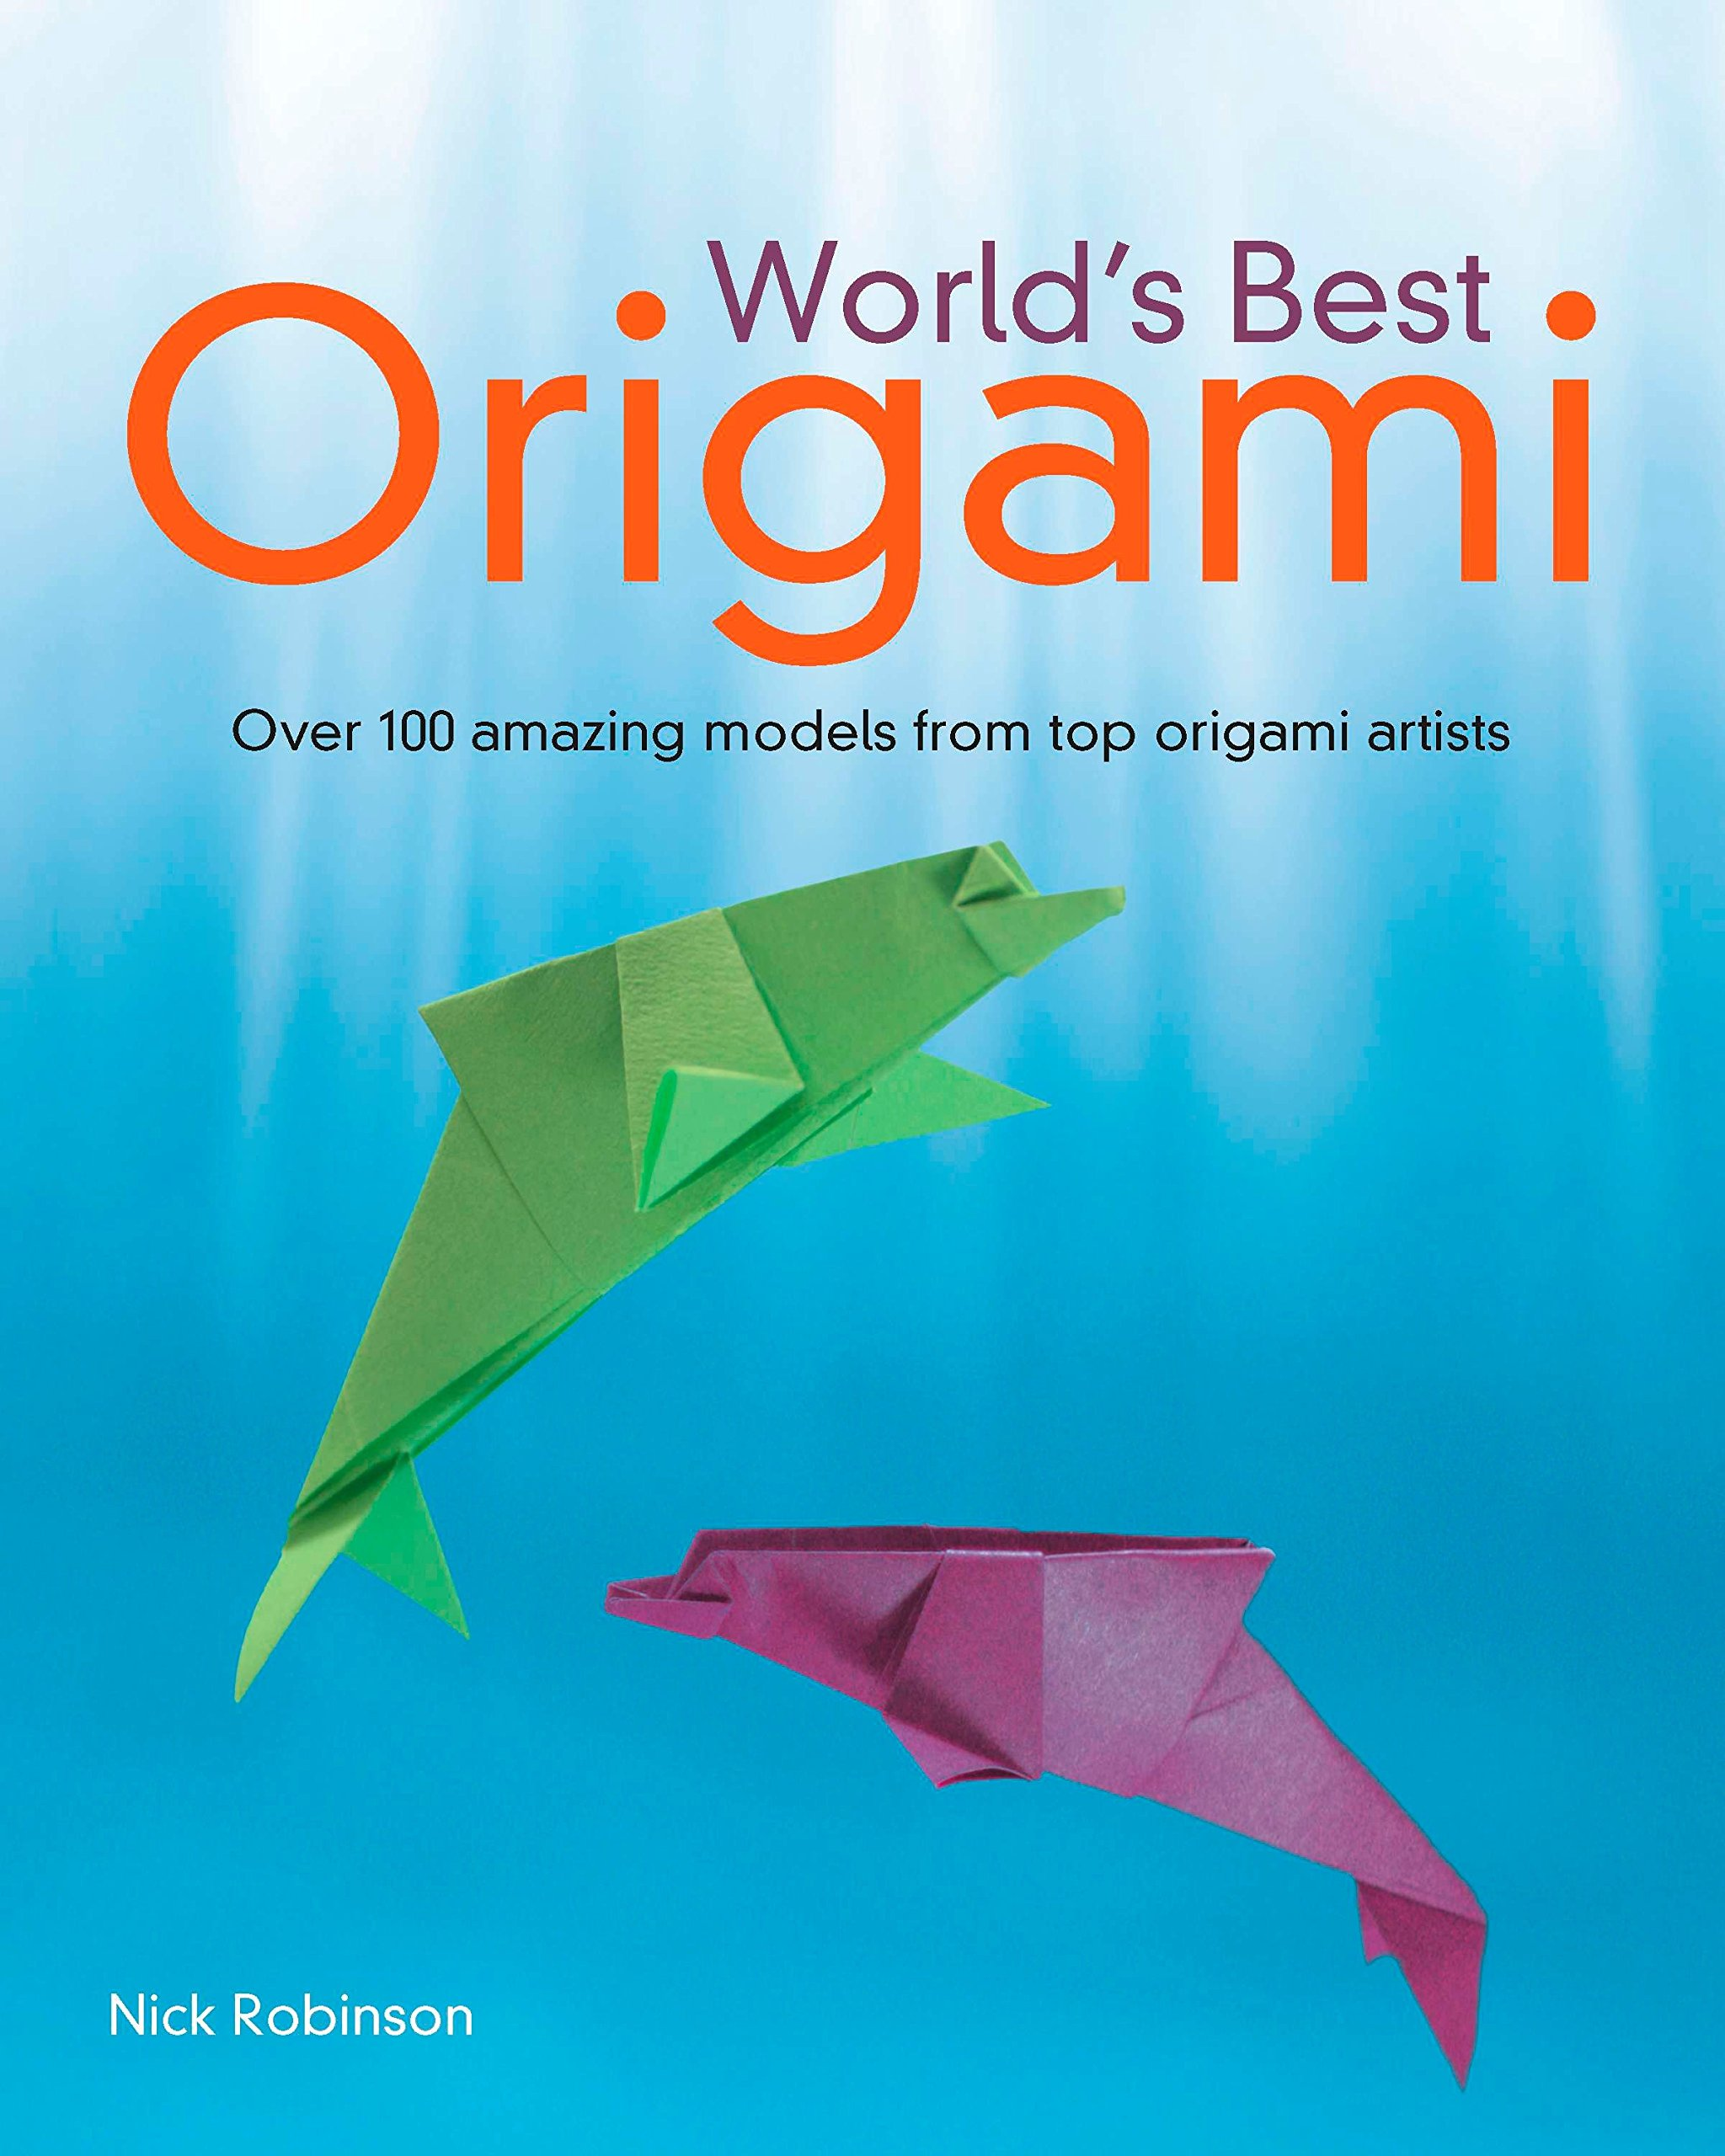 World's Best Origami Paperback Book by Nick Robinson